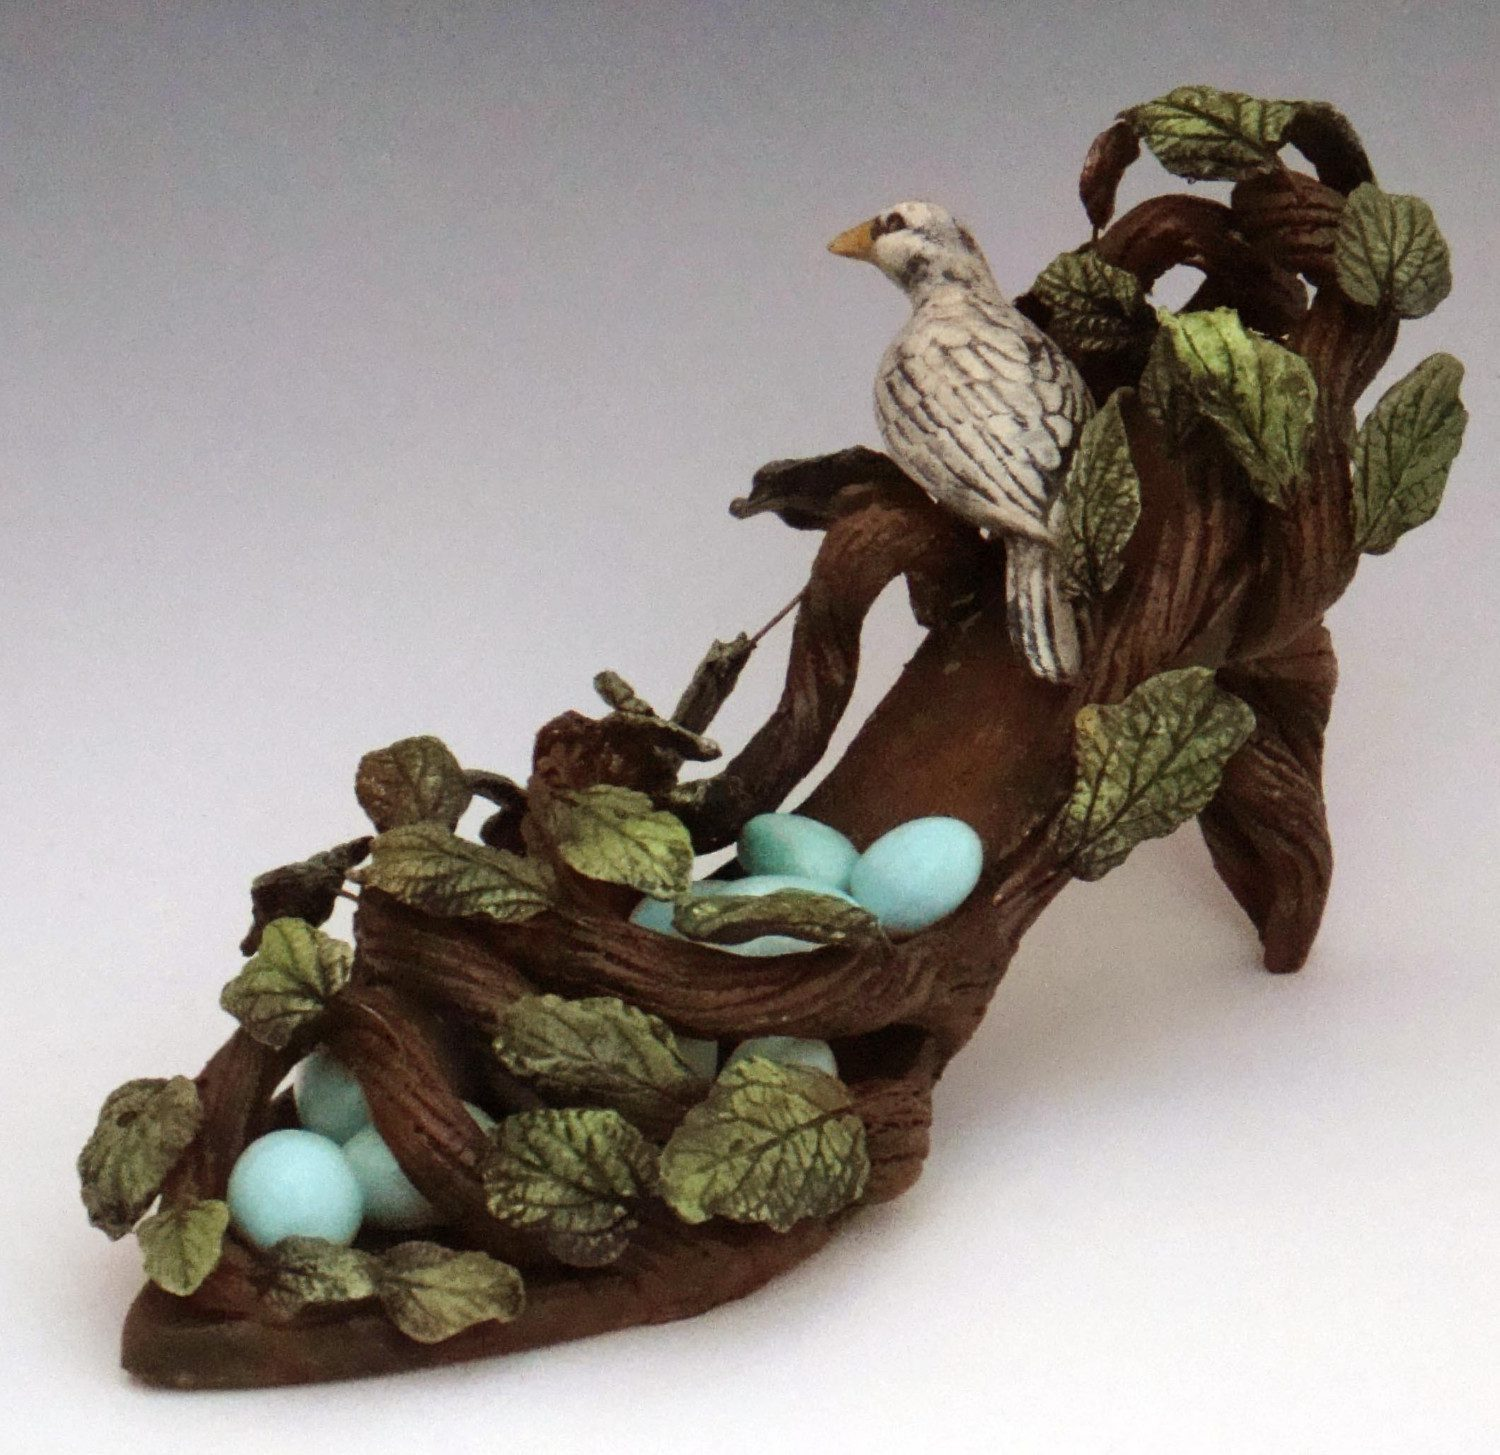 Art Clay Sculpted Bird Nest Ring: [Interview] Mudgoddess Katherine Mathisen